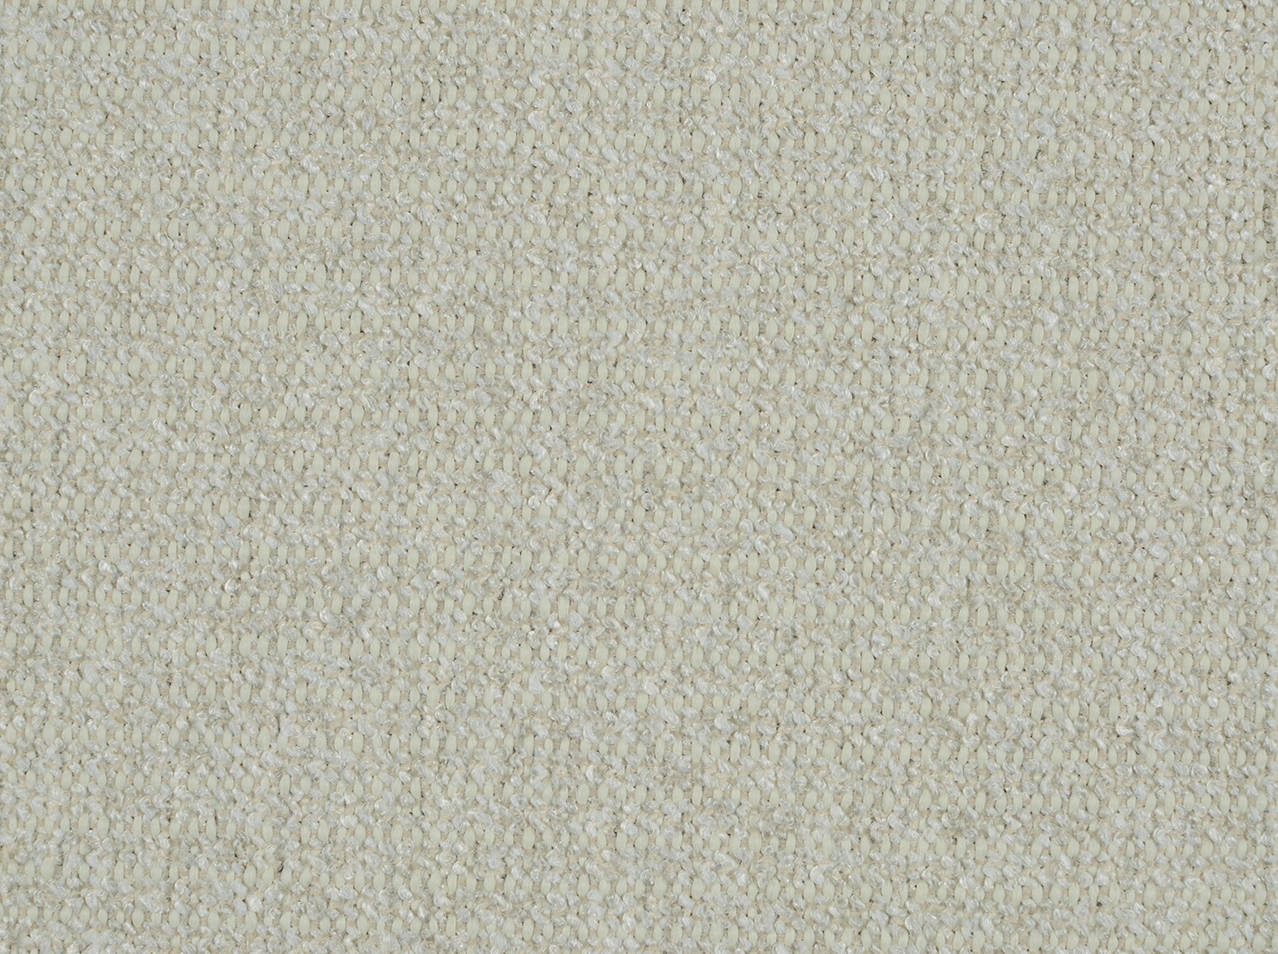 Covington Solids%20and%20Textures Rockaway